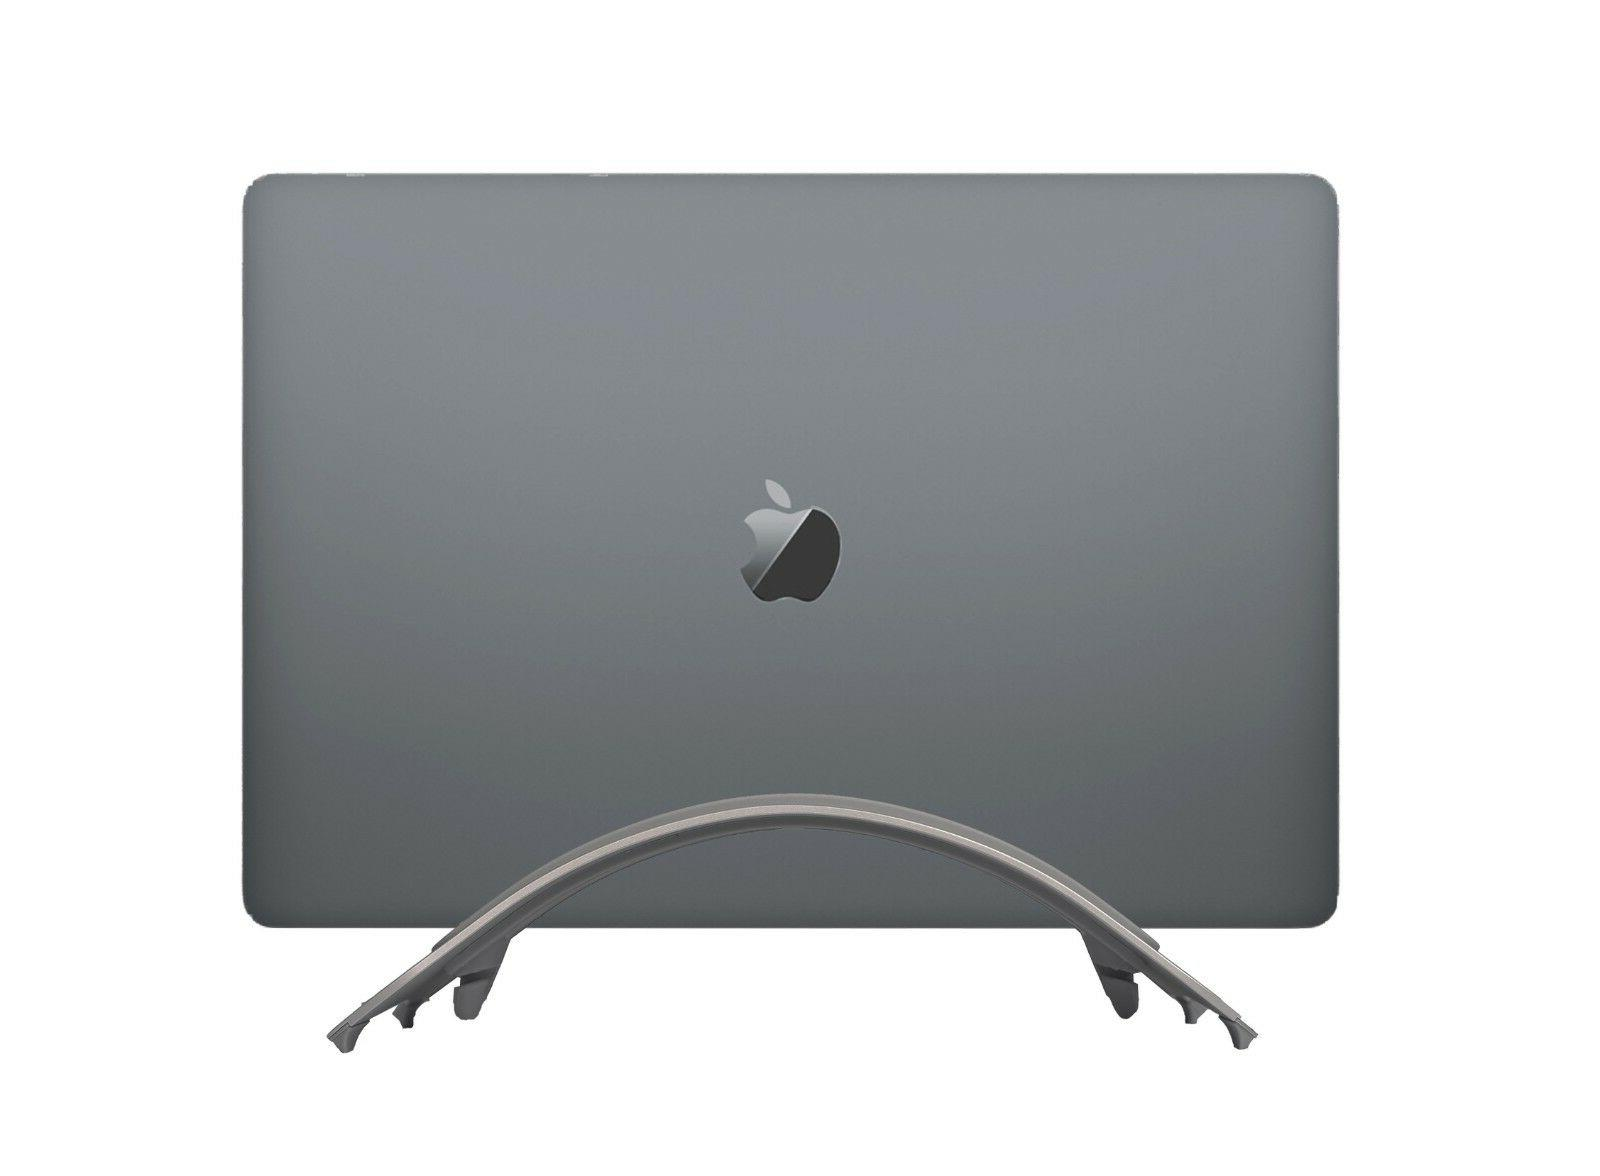 arctic series arc laptop stand for apple